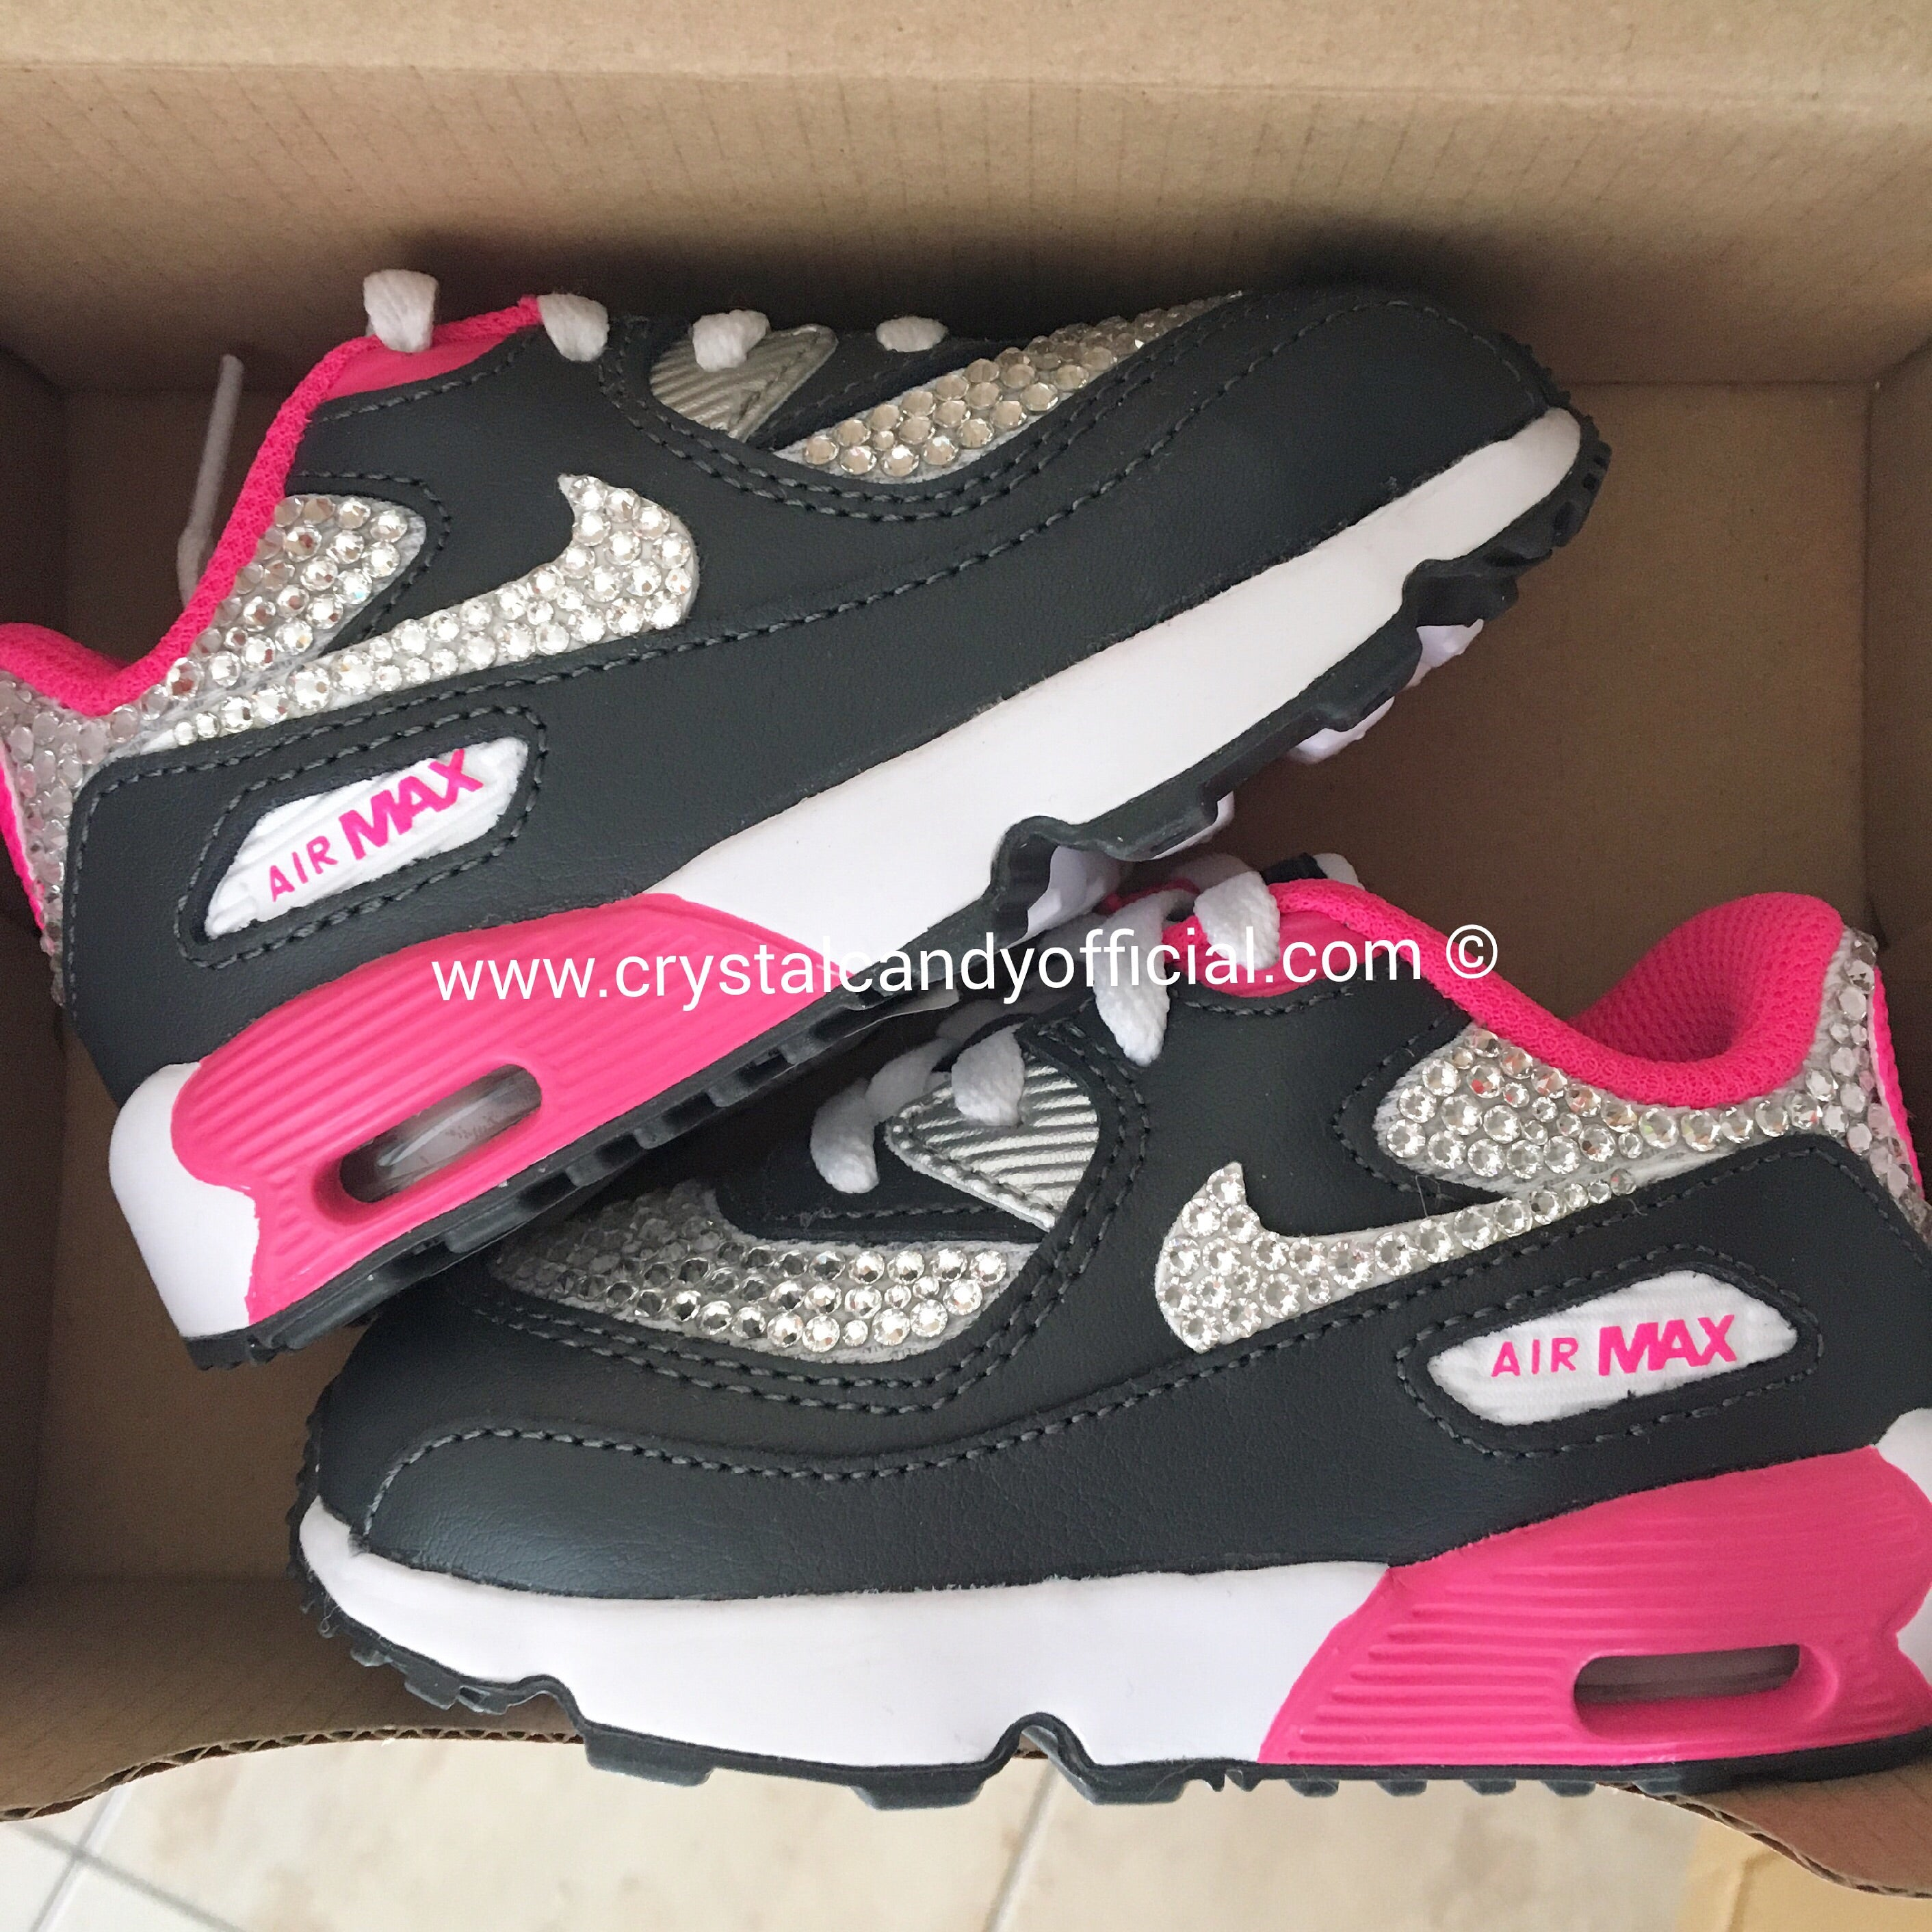 Kids Baby Crystal Nike Air Max 90 s Ticks ly Crystal Candy Limited